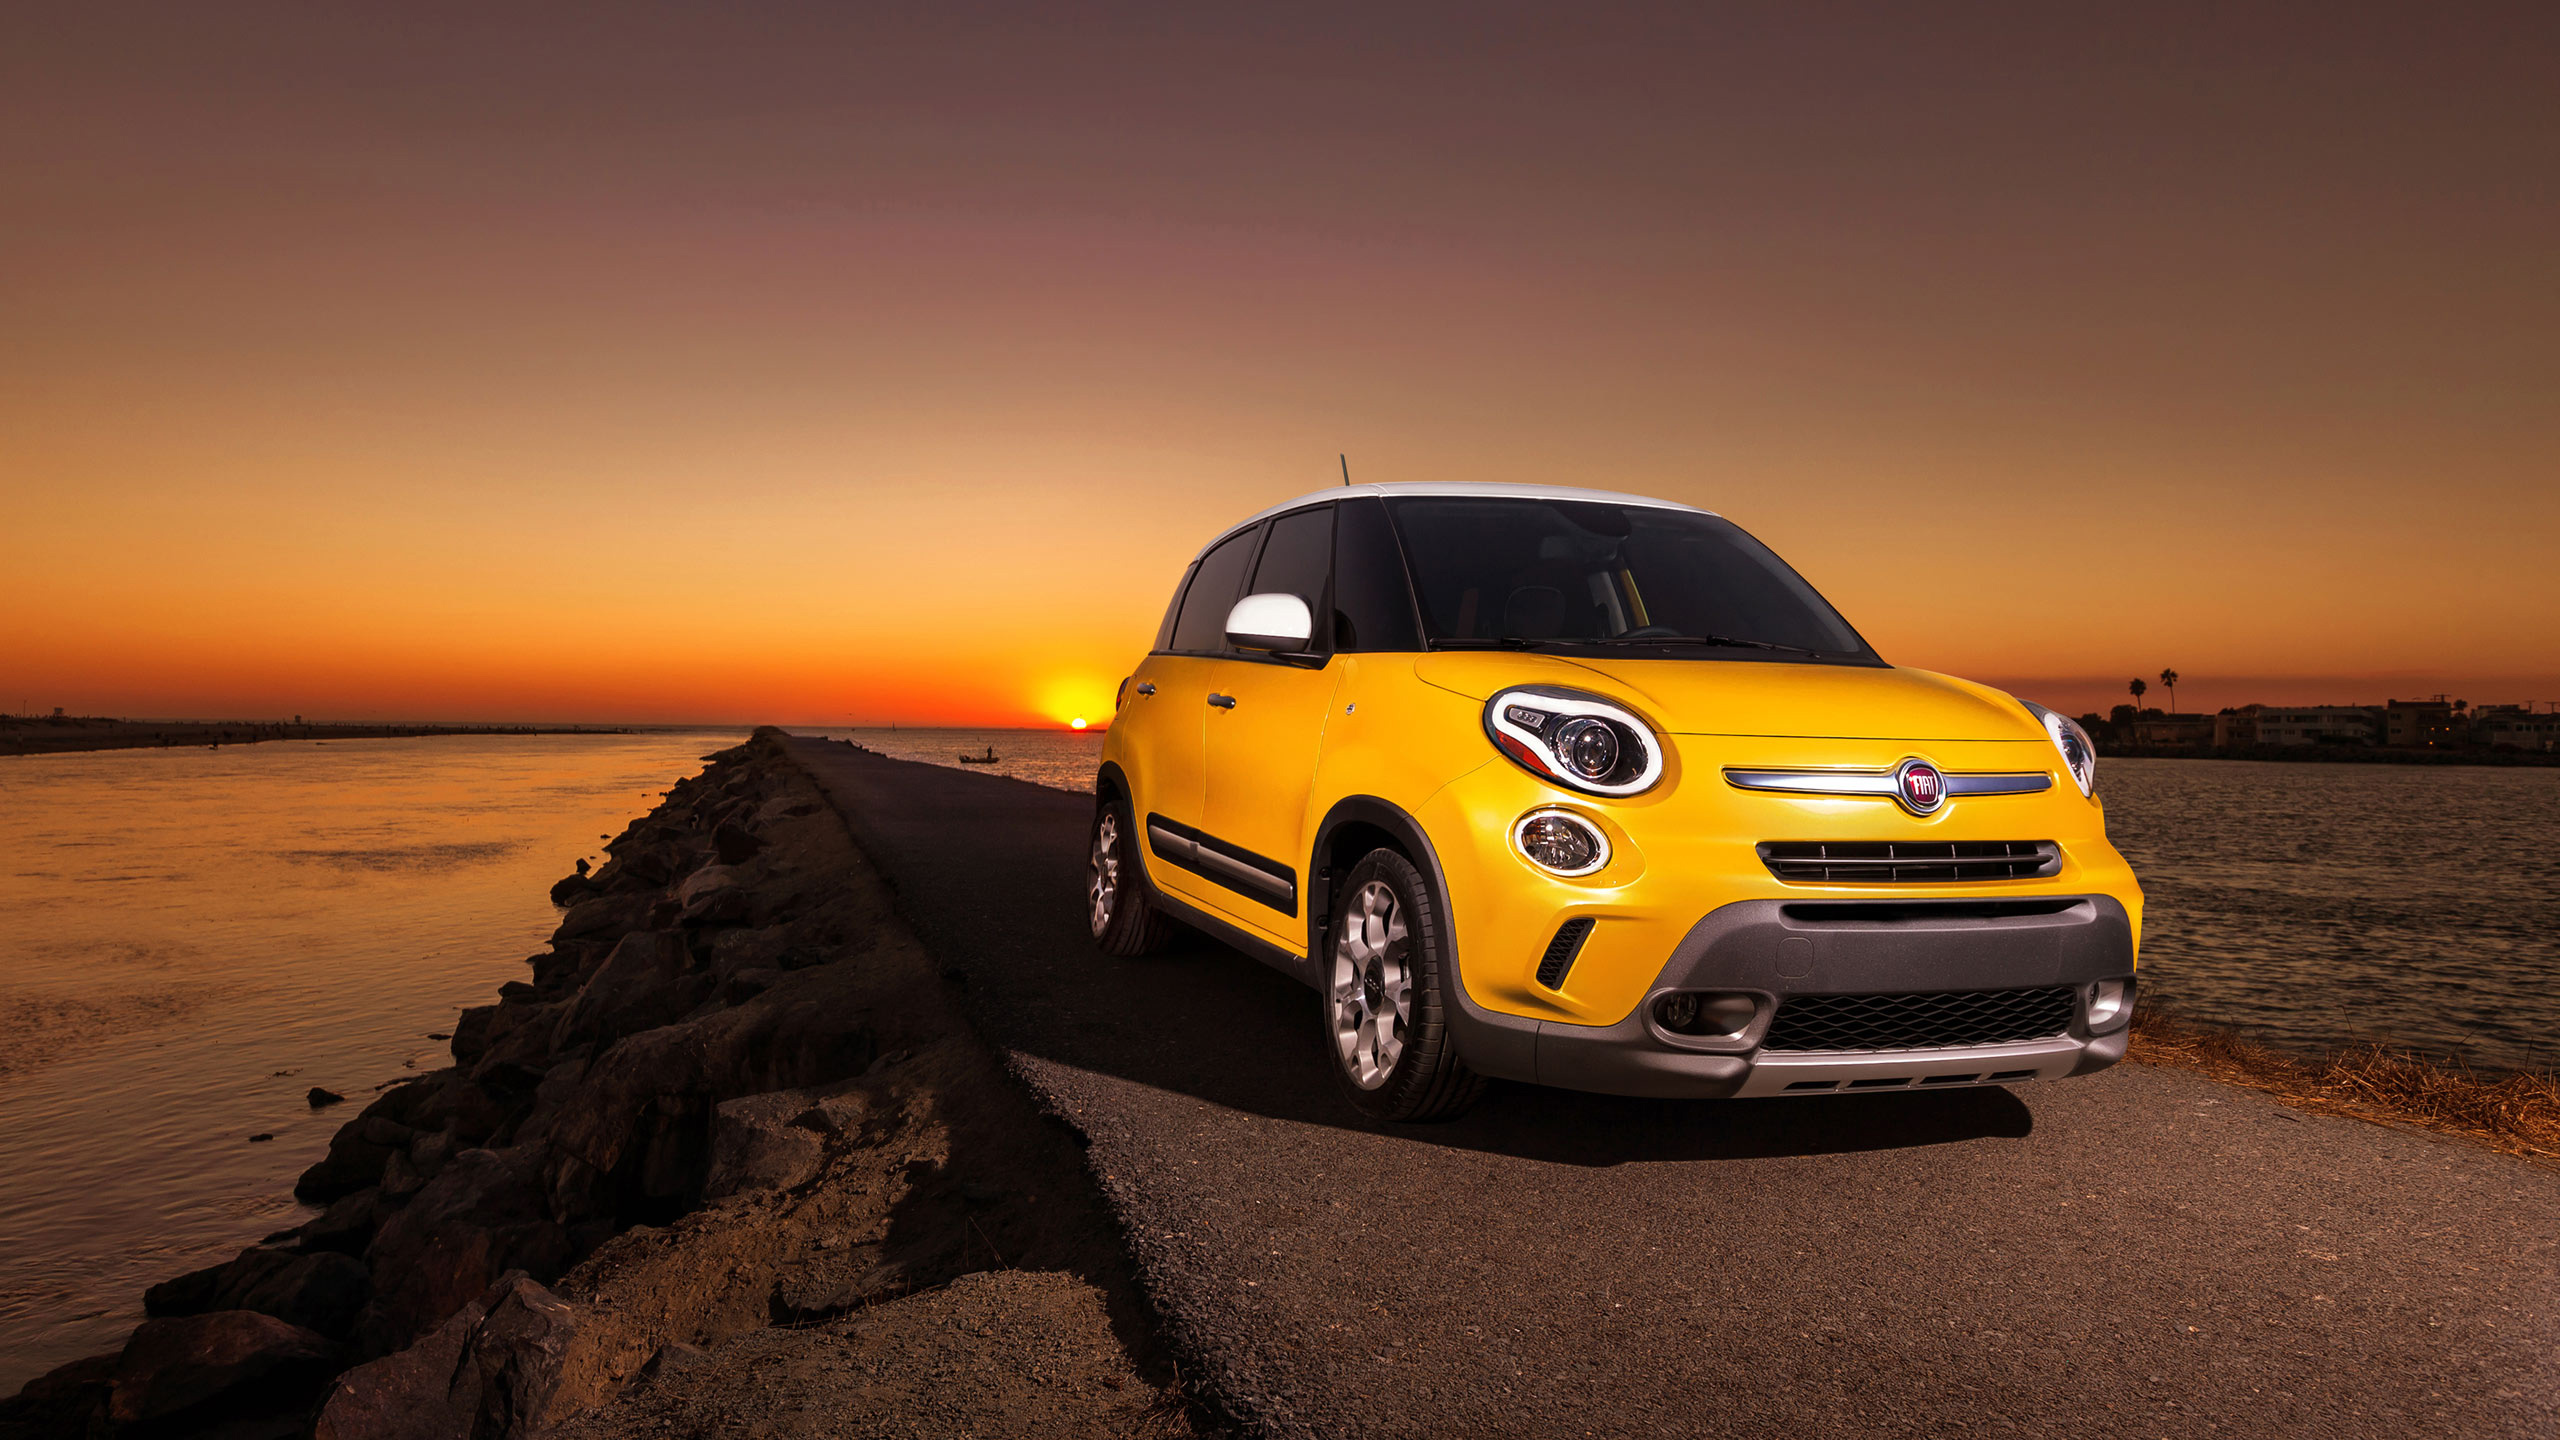 awesome fiat wallpaper 37458